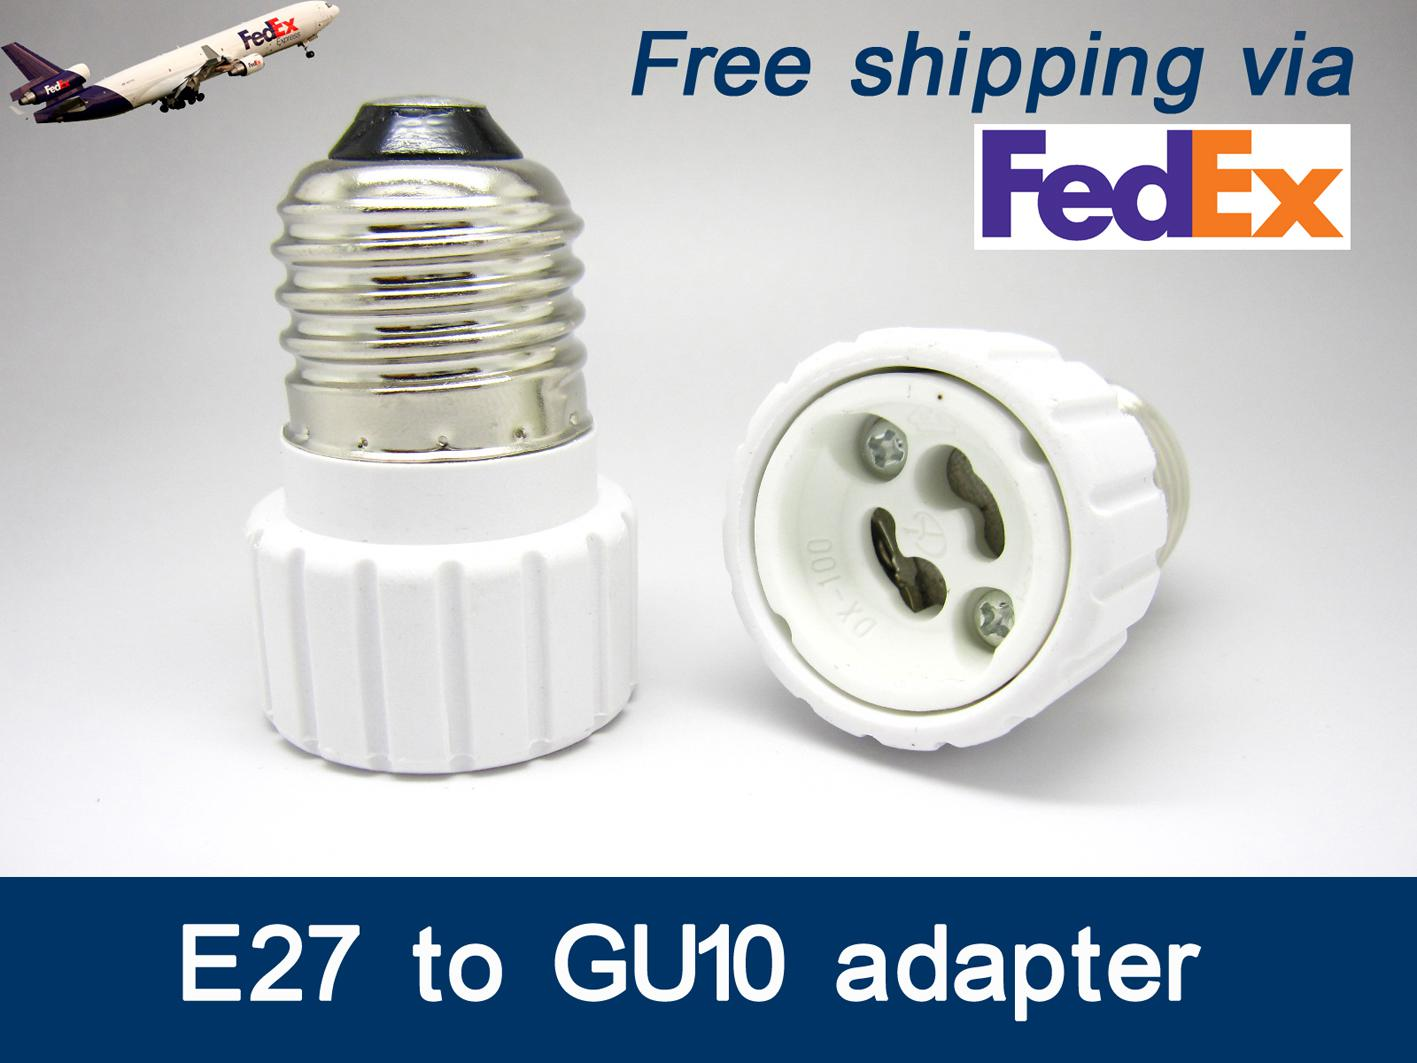 Fedex ES to GU10 adaptor LED Light Adapter E27 to GU10 adaptor holder adapter GU10 to E27 converter socket E27-GU10 GU10-E27